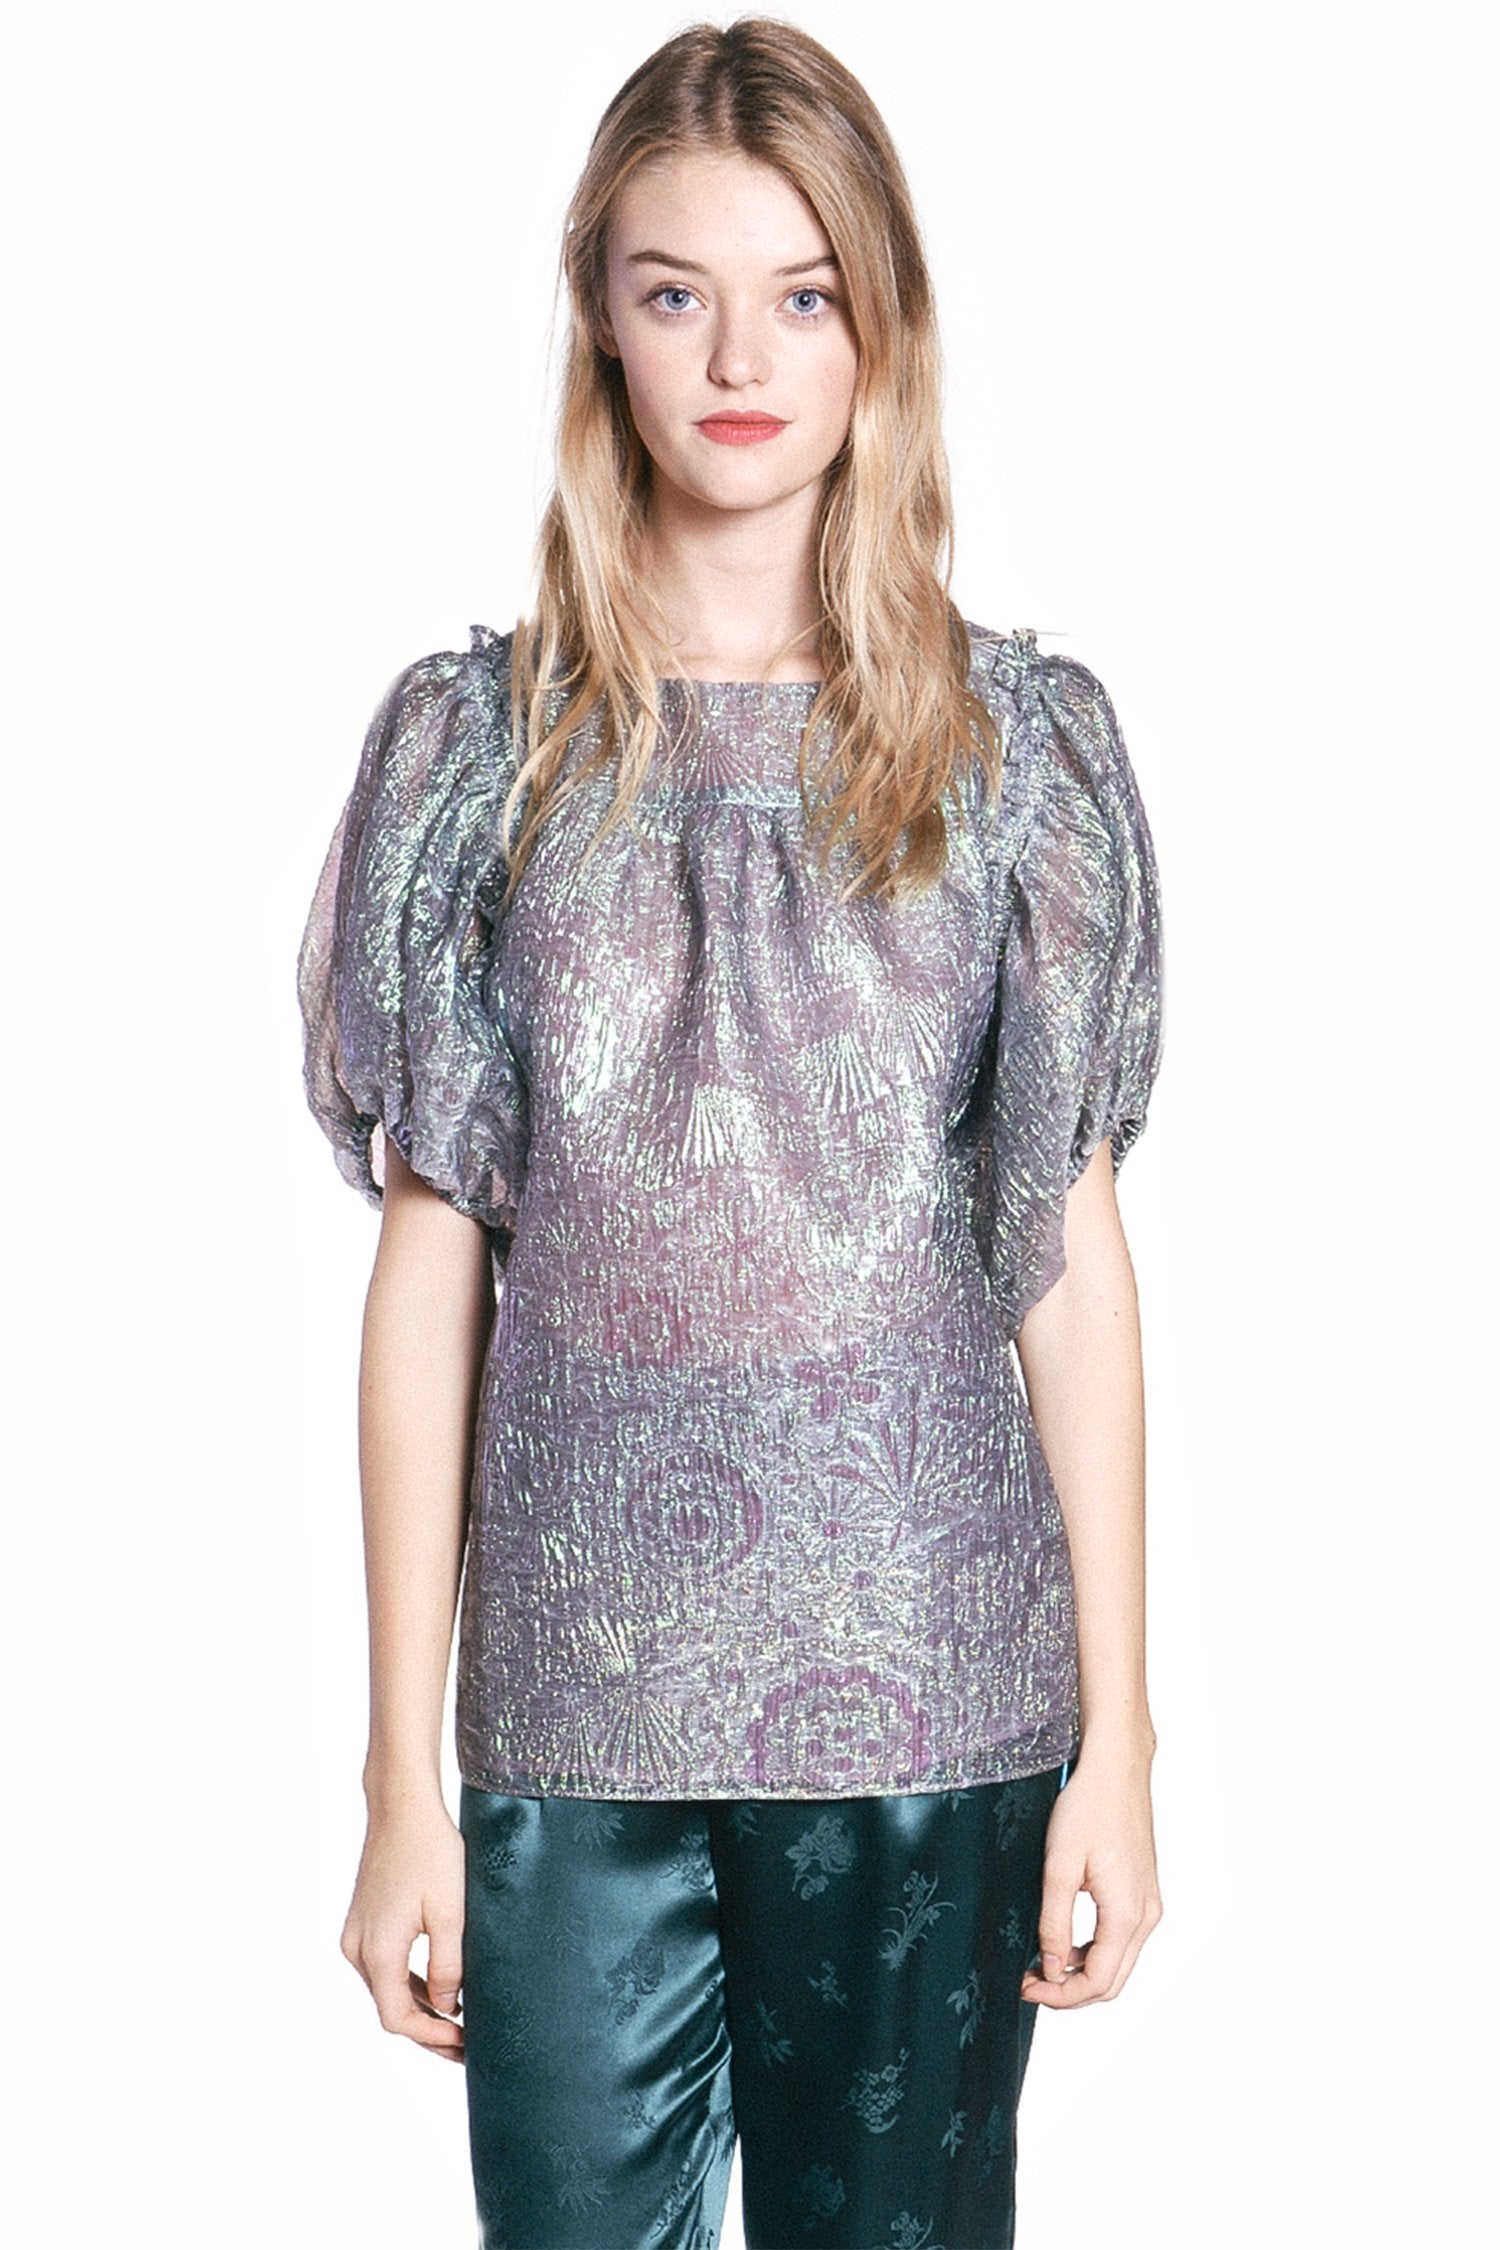 Mother of Pearl Iridescent Jacquard Top - Anna Sui